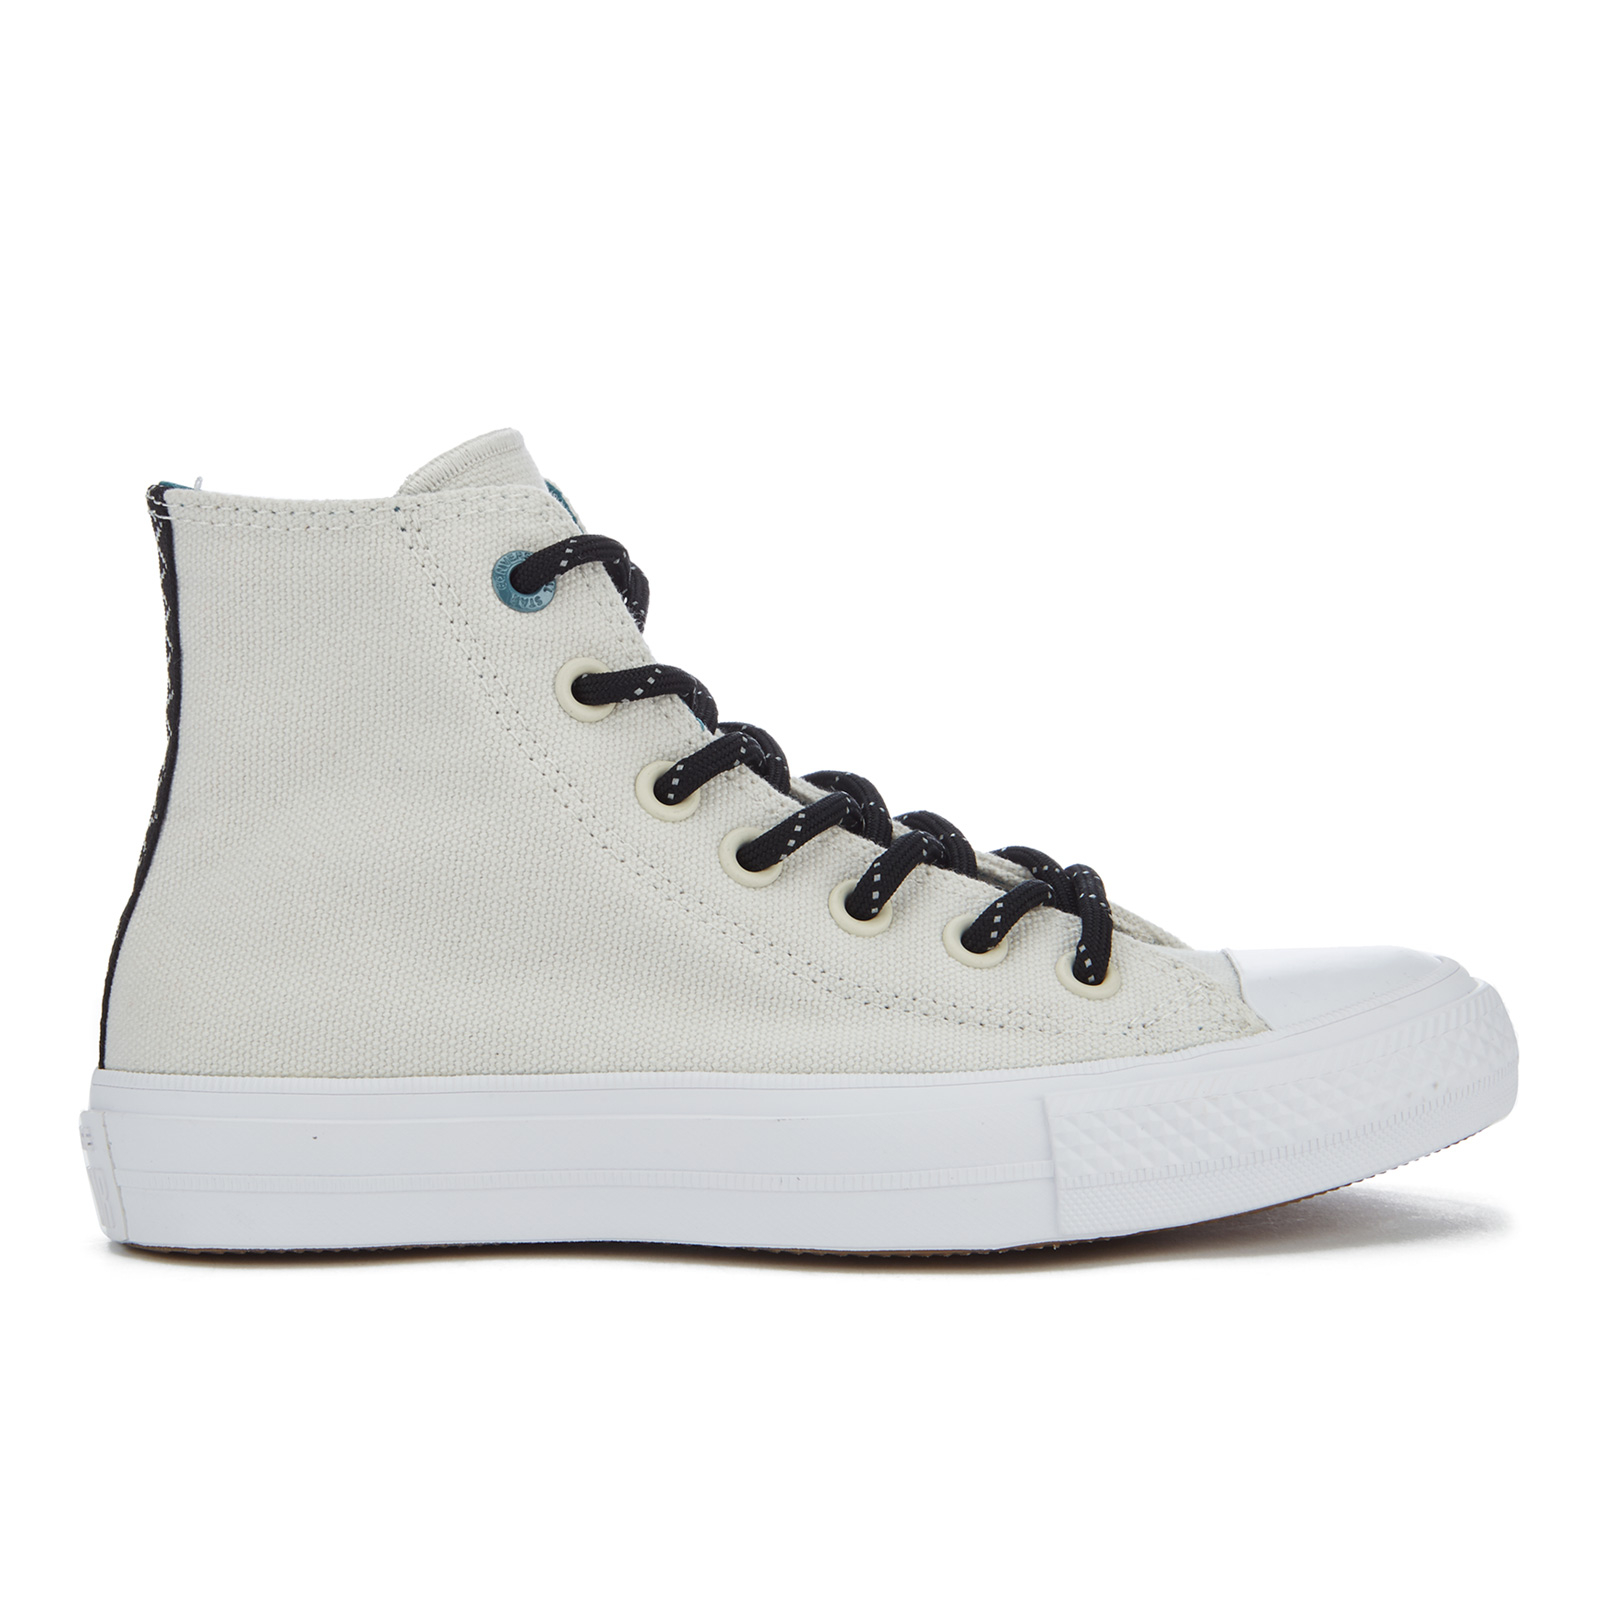 42d435259af586 Converse Women s Chuck Taylor All Star II Shield Canvas Hi-Top Trainers -  Buff Cool Jade White